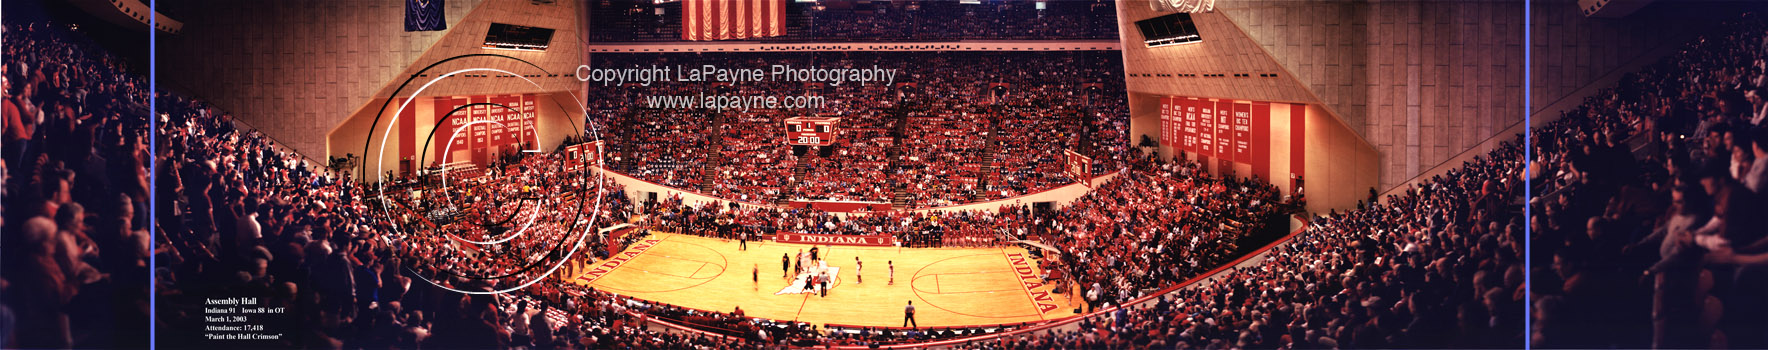 Assembly Hall, Paint the Hall Crimson, Indiana Basketball 2003